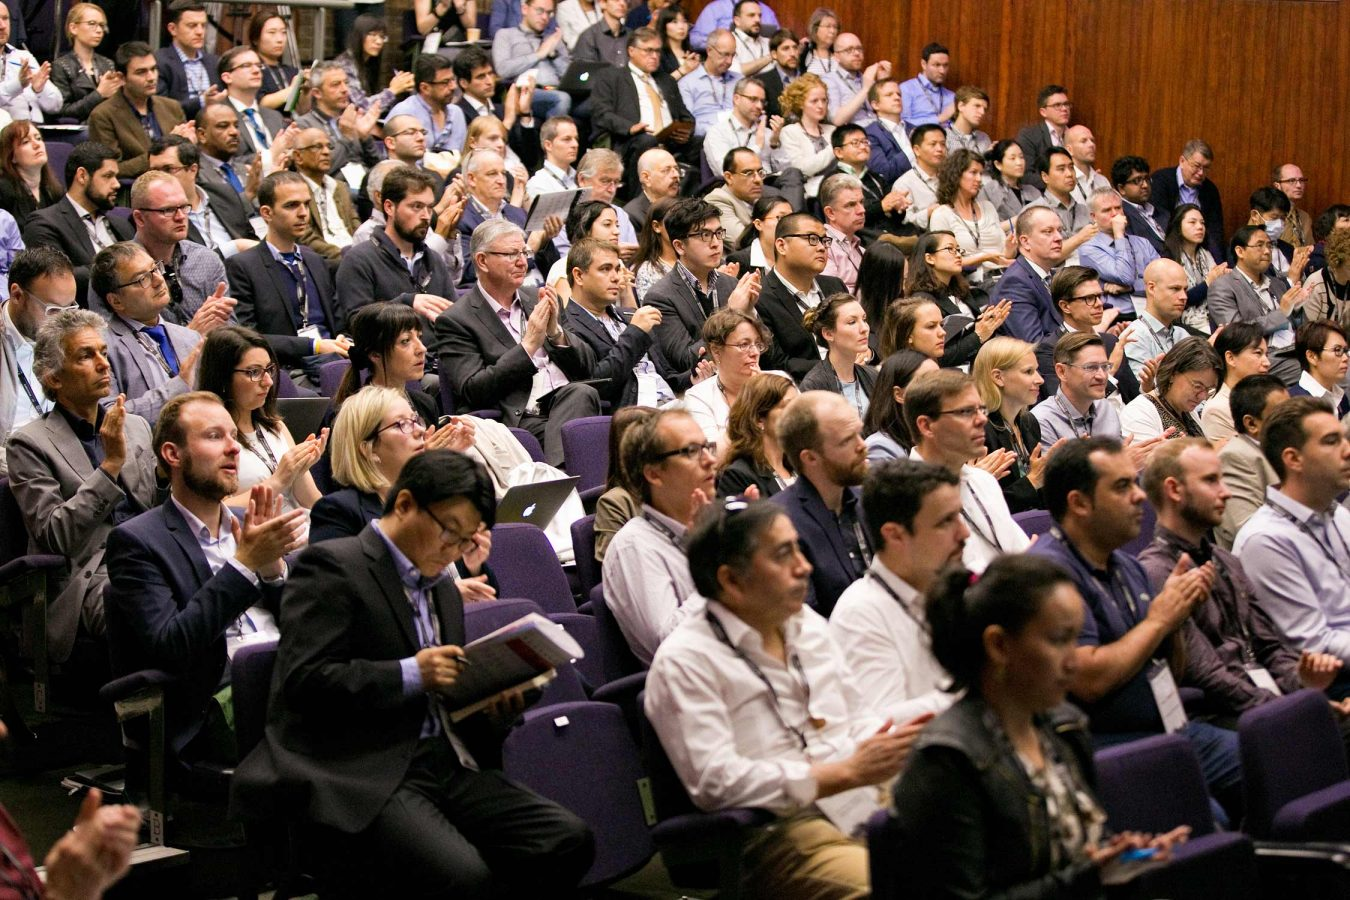 university-of-cambridge-conference-full-auditorium